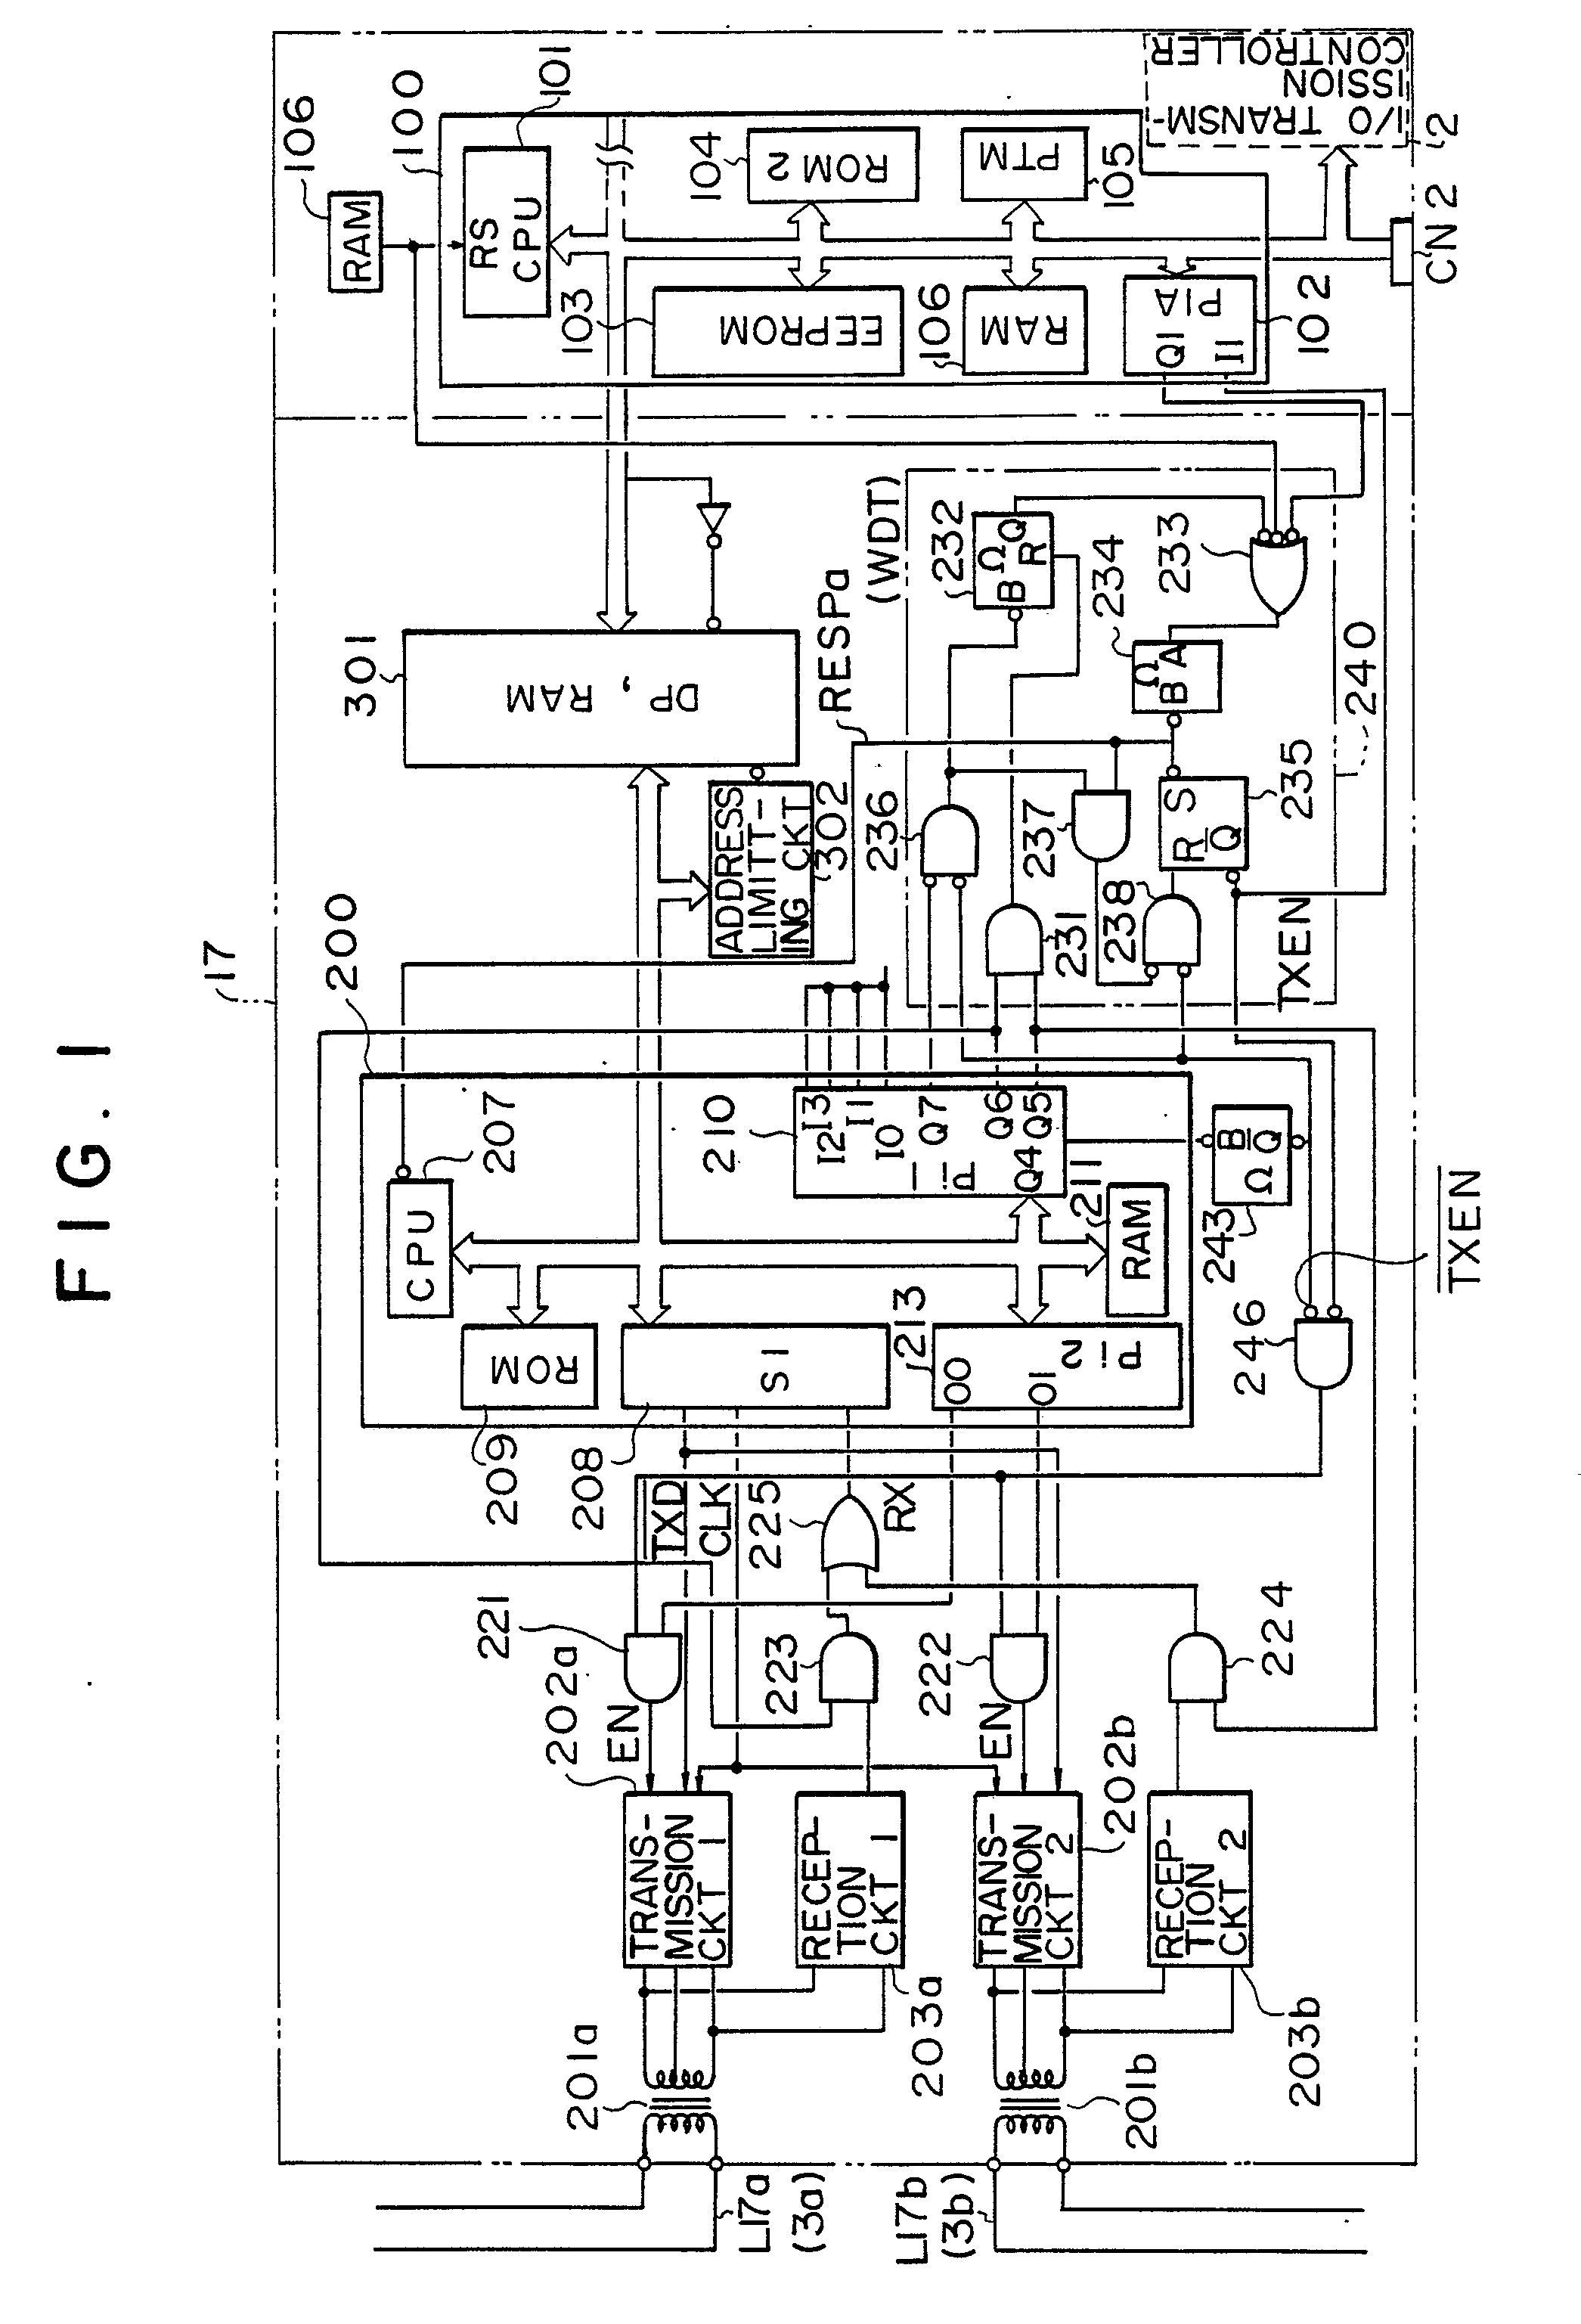 imgf0001 patent ep0335412a1 elevator control system google patents  at bayanpartner.co